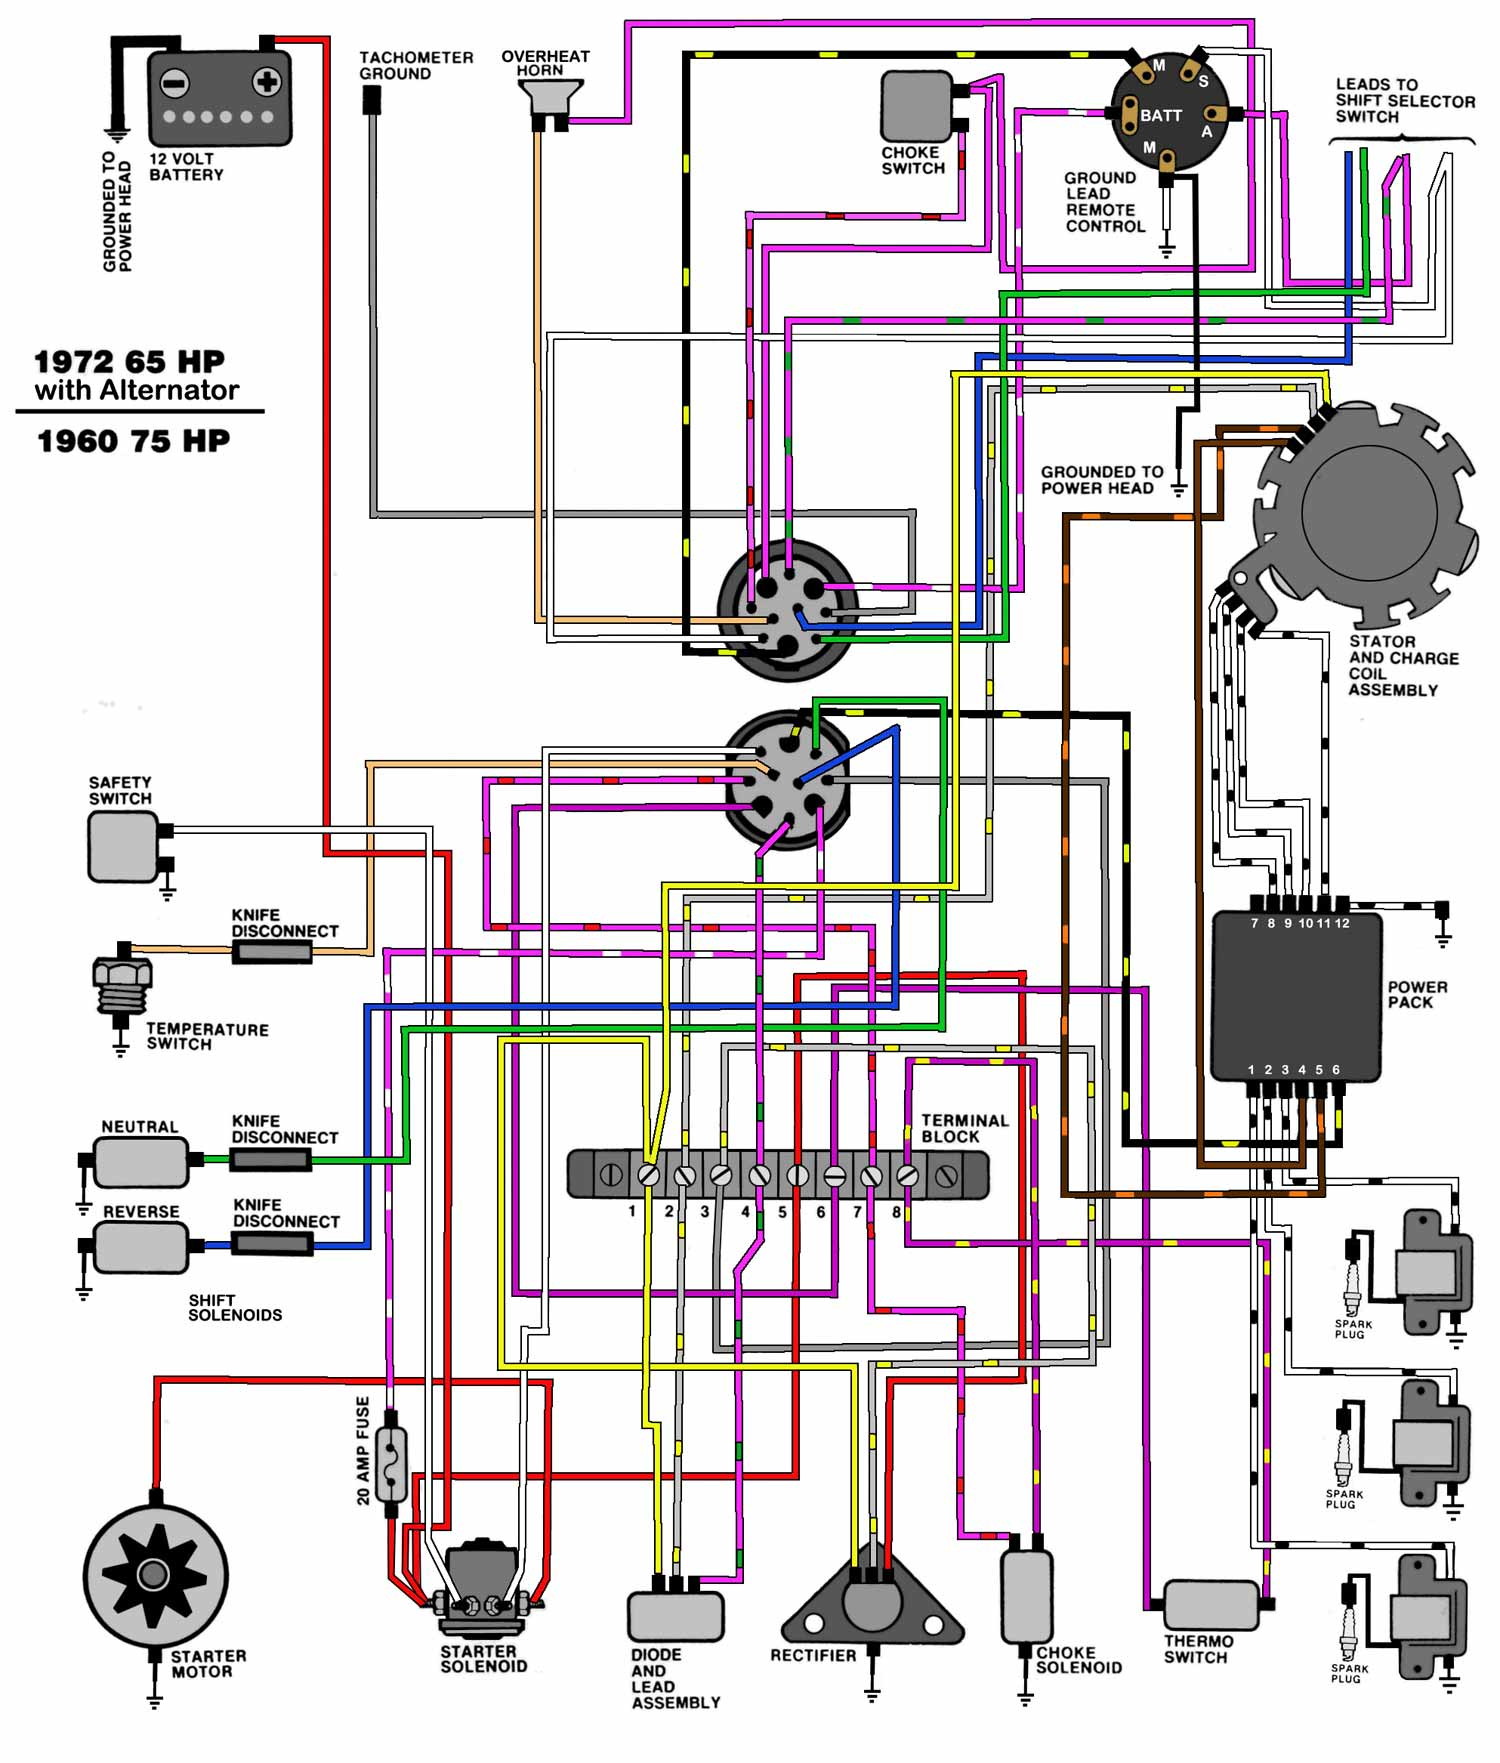 60 Hp Evinrude Wiring Diagram - Great Installation Of Wiring Diagram  Johnson Hp Wiring Diagram on johnson 75 hp wiring diagram, johnson 100 hp wiring diagram, johnson 20 hp wiring diagram, johnson 70 hp wiring diagram, johnson 115 hp wiring diagram, johnson 50 hp wiring diagram, johnson 15 hp wiring diagram, johnson 40 hp wiring diagram, johnson 25 hp wiring diagram, johnson 90 hp wiring diagram, johnson 60 hp wiring diagram, johnson 28 hp wiring diagram, johnson 55 hp wiring diagram,